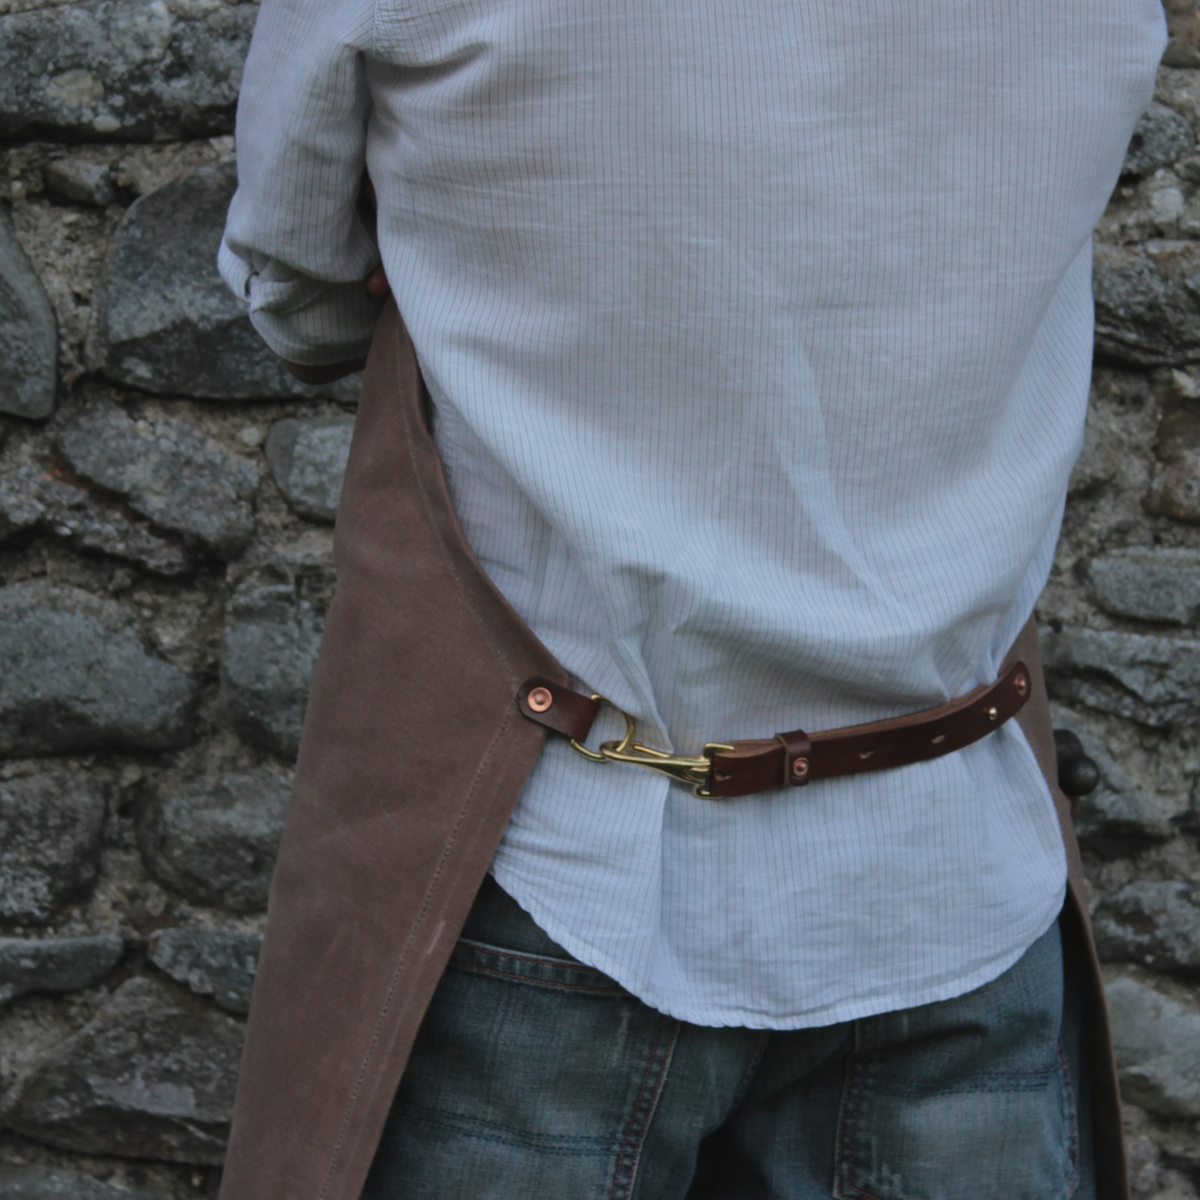 Back detail. Apron fastens with an adjustable oak bark tanned leather waist strap with sam browne stud and a snap hook. Brass, leather, copper rivets - all will last for many a year.